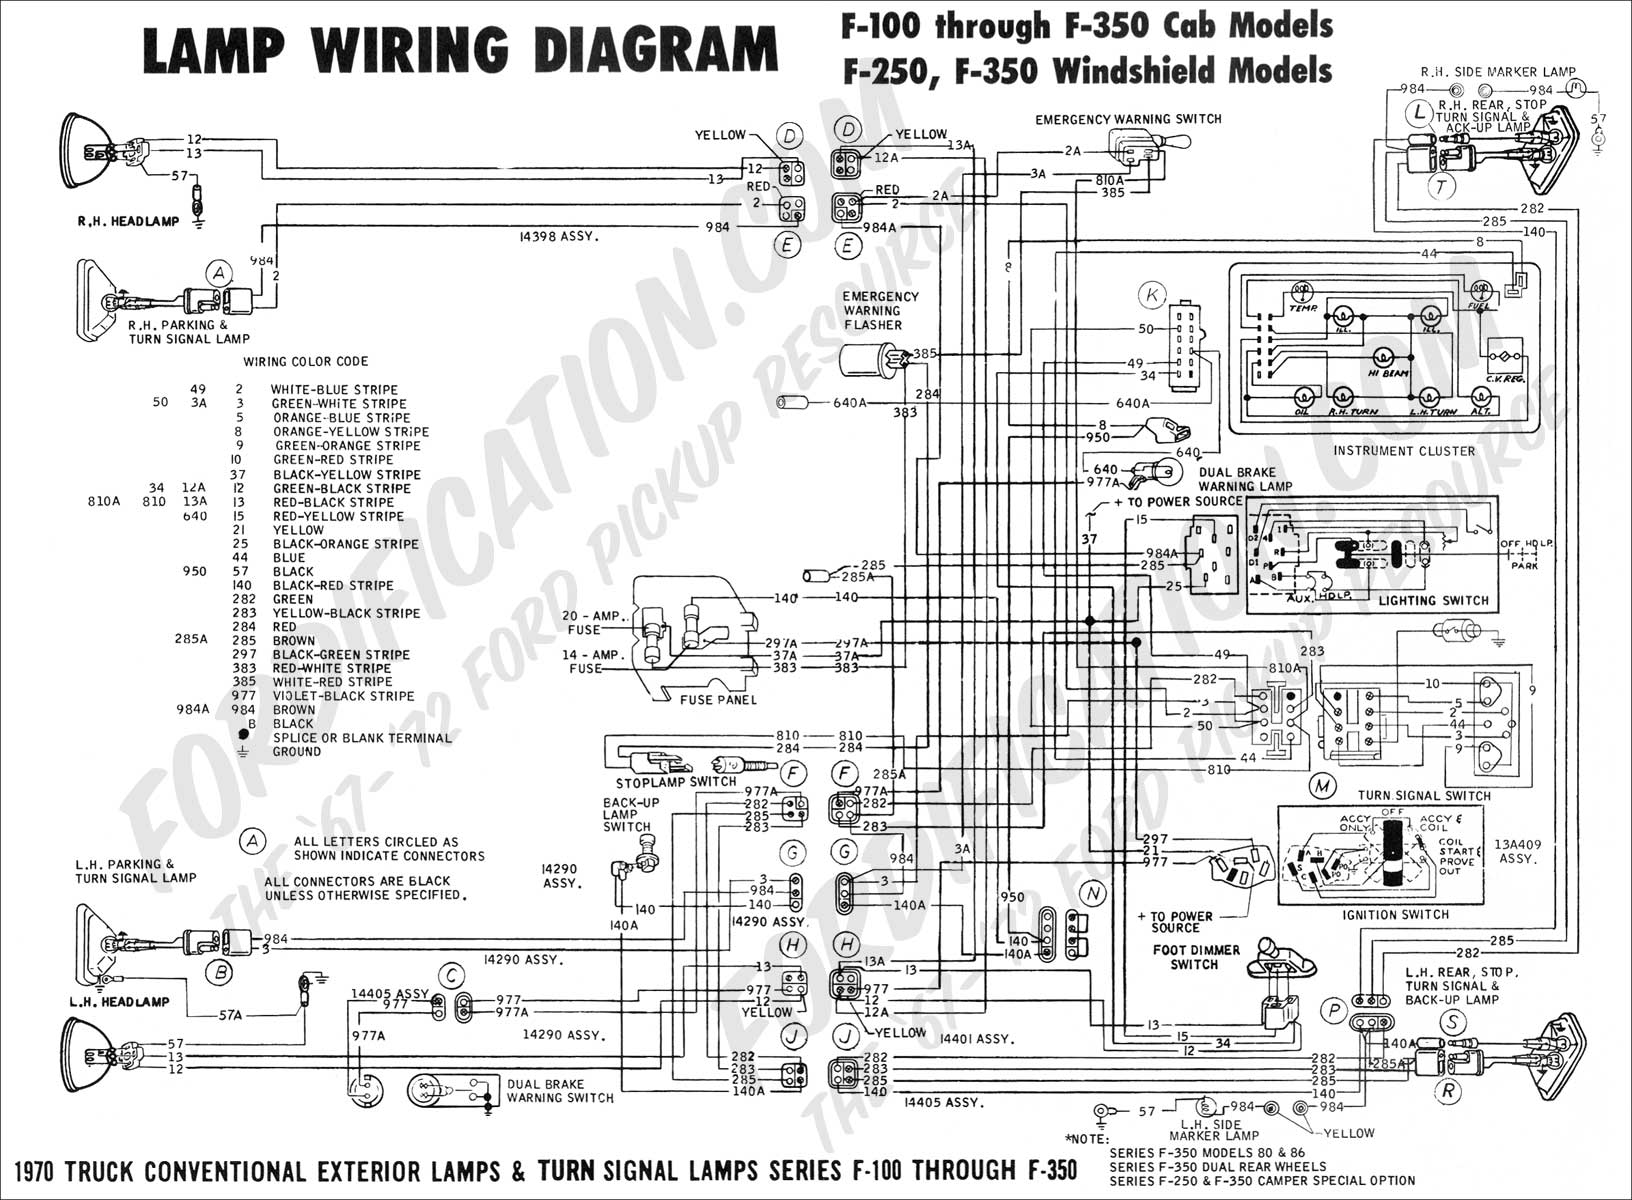 wiring diagram_70ext lights01?resize=665%2C489 ford f150 right rear taillight is out where is fuse and how 1999 ford f150 turn signal wiring diagram at gsmportal.co